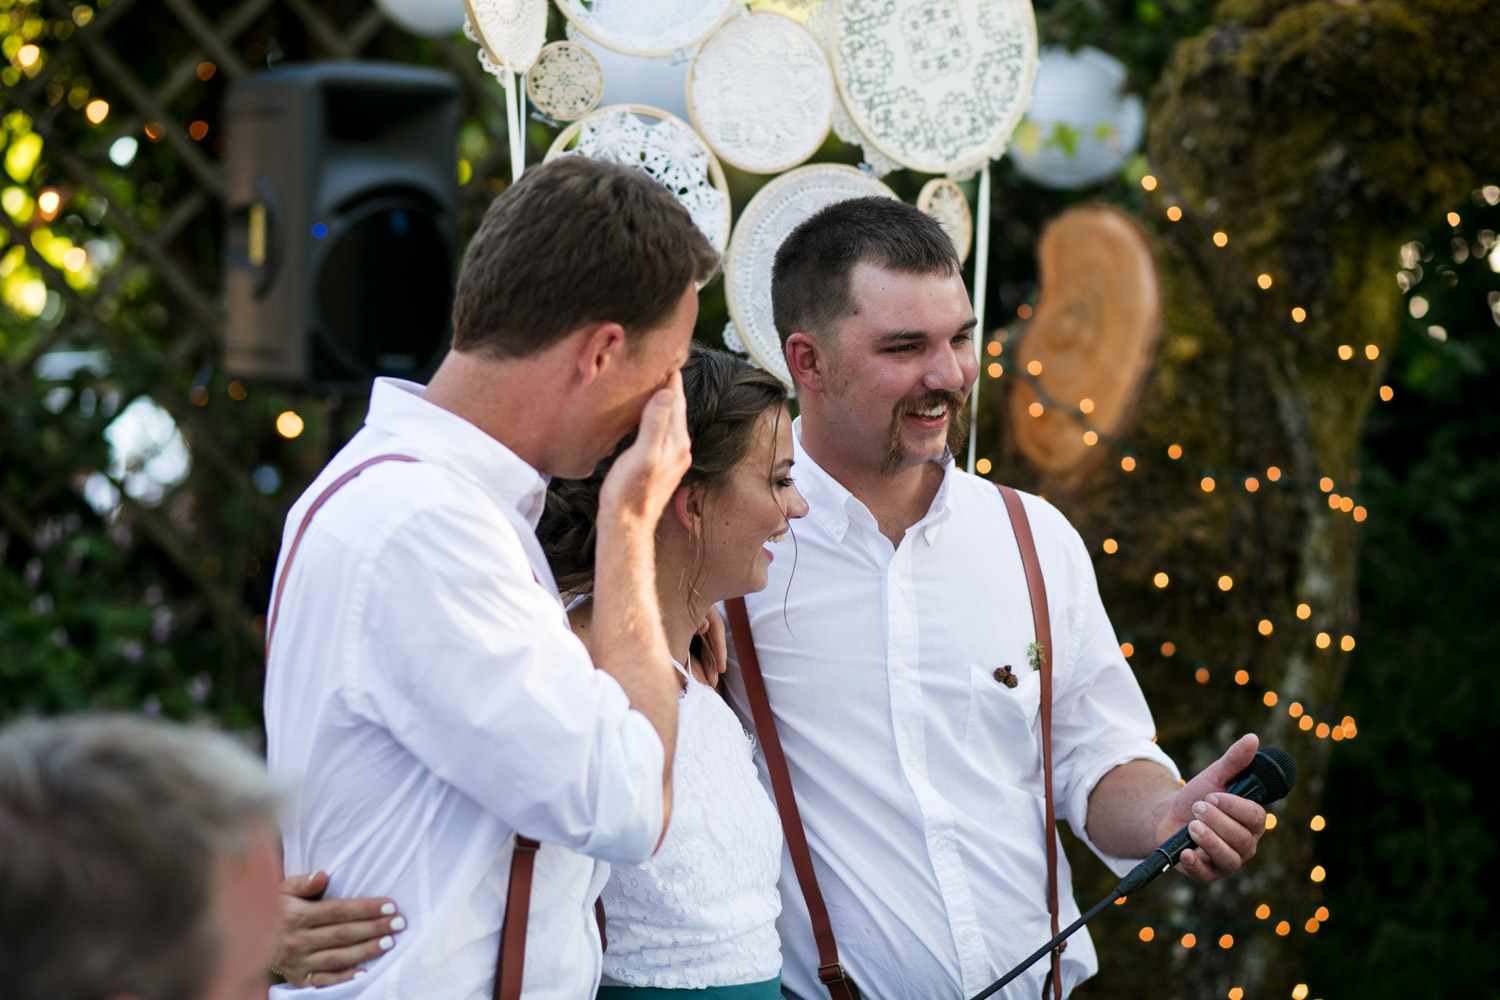 Portland-Wedding-Photographers-MadelineandTrevor_Blog_146.jpg